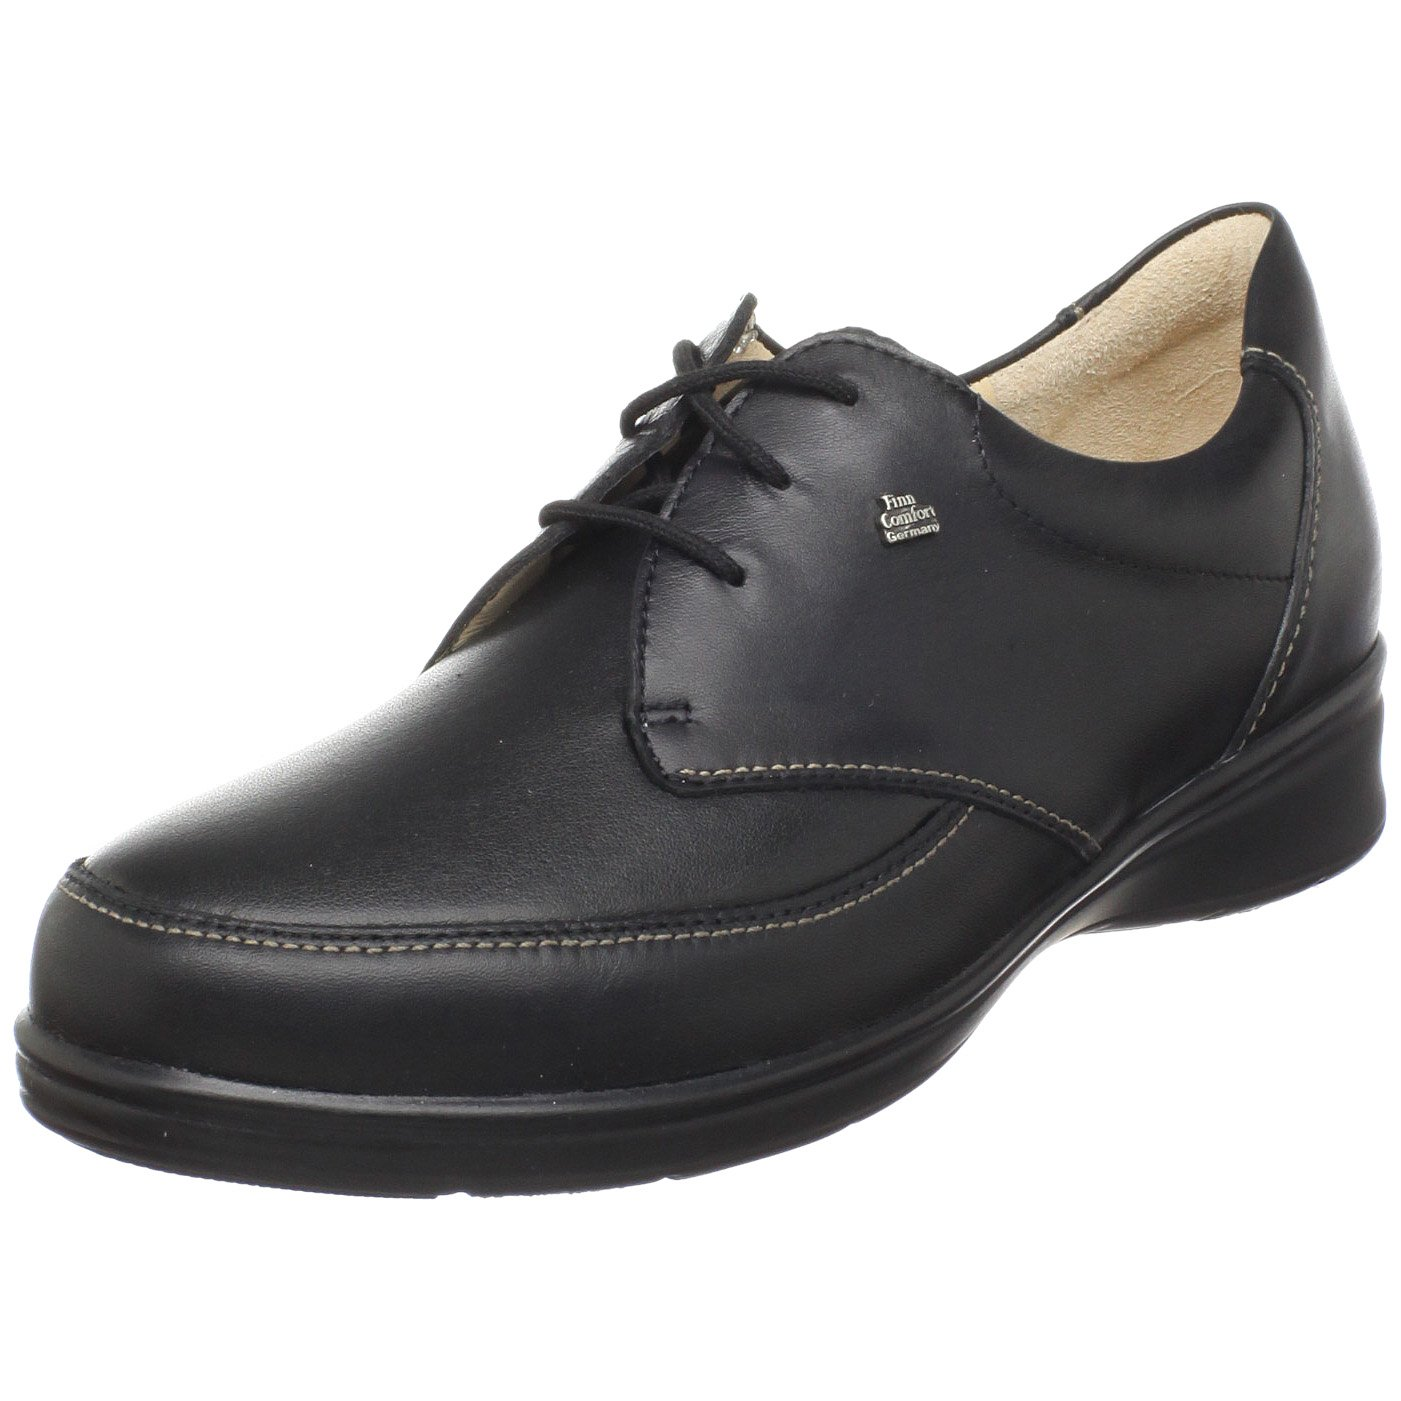 Finn Comfort Women's Arnheim Oxford,Black Nappa/Stretch,6.5 M US/ 4 UK